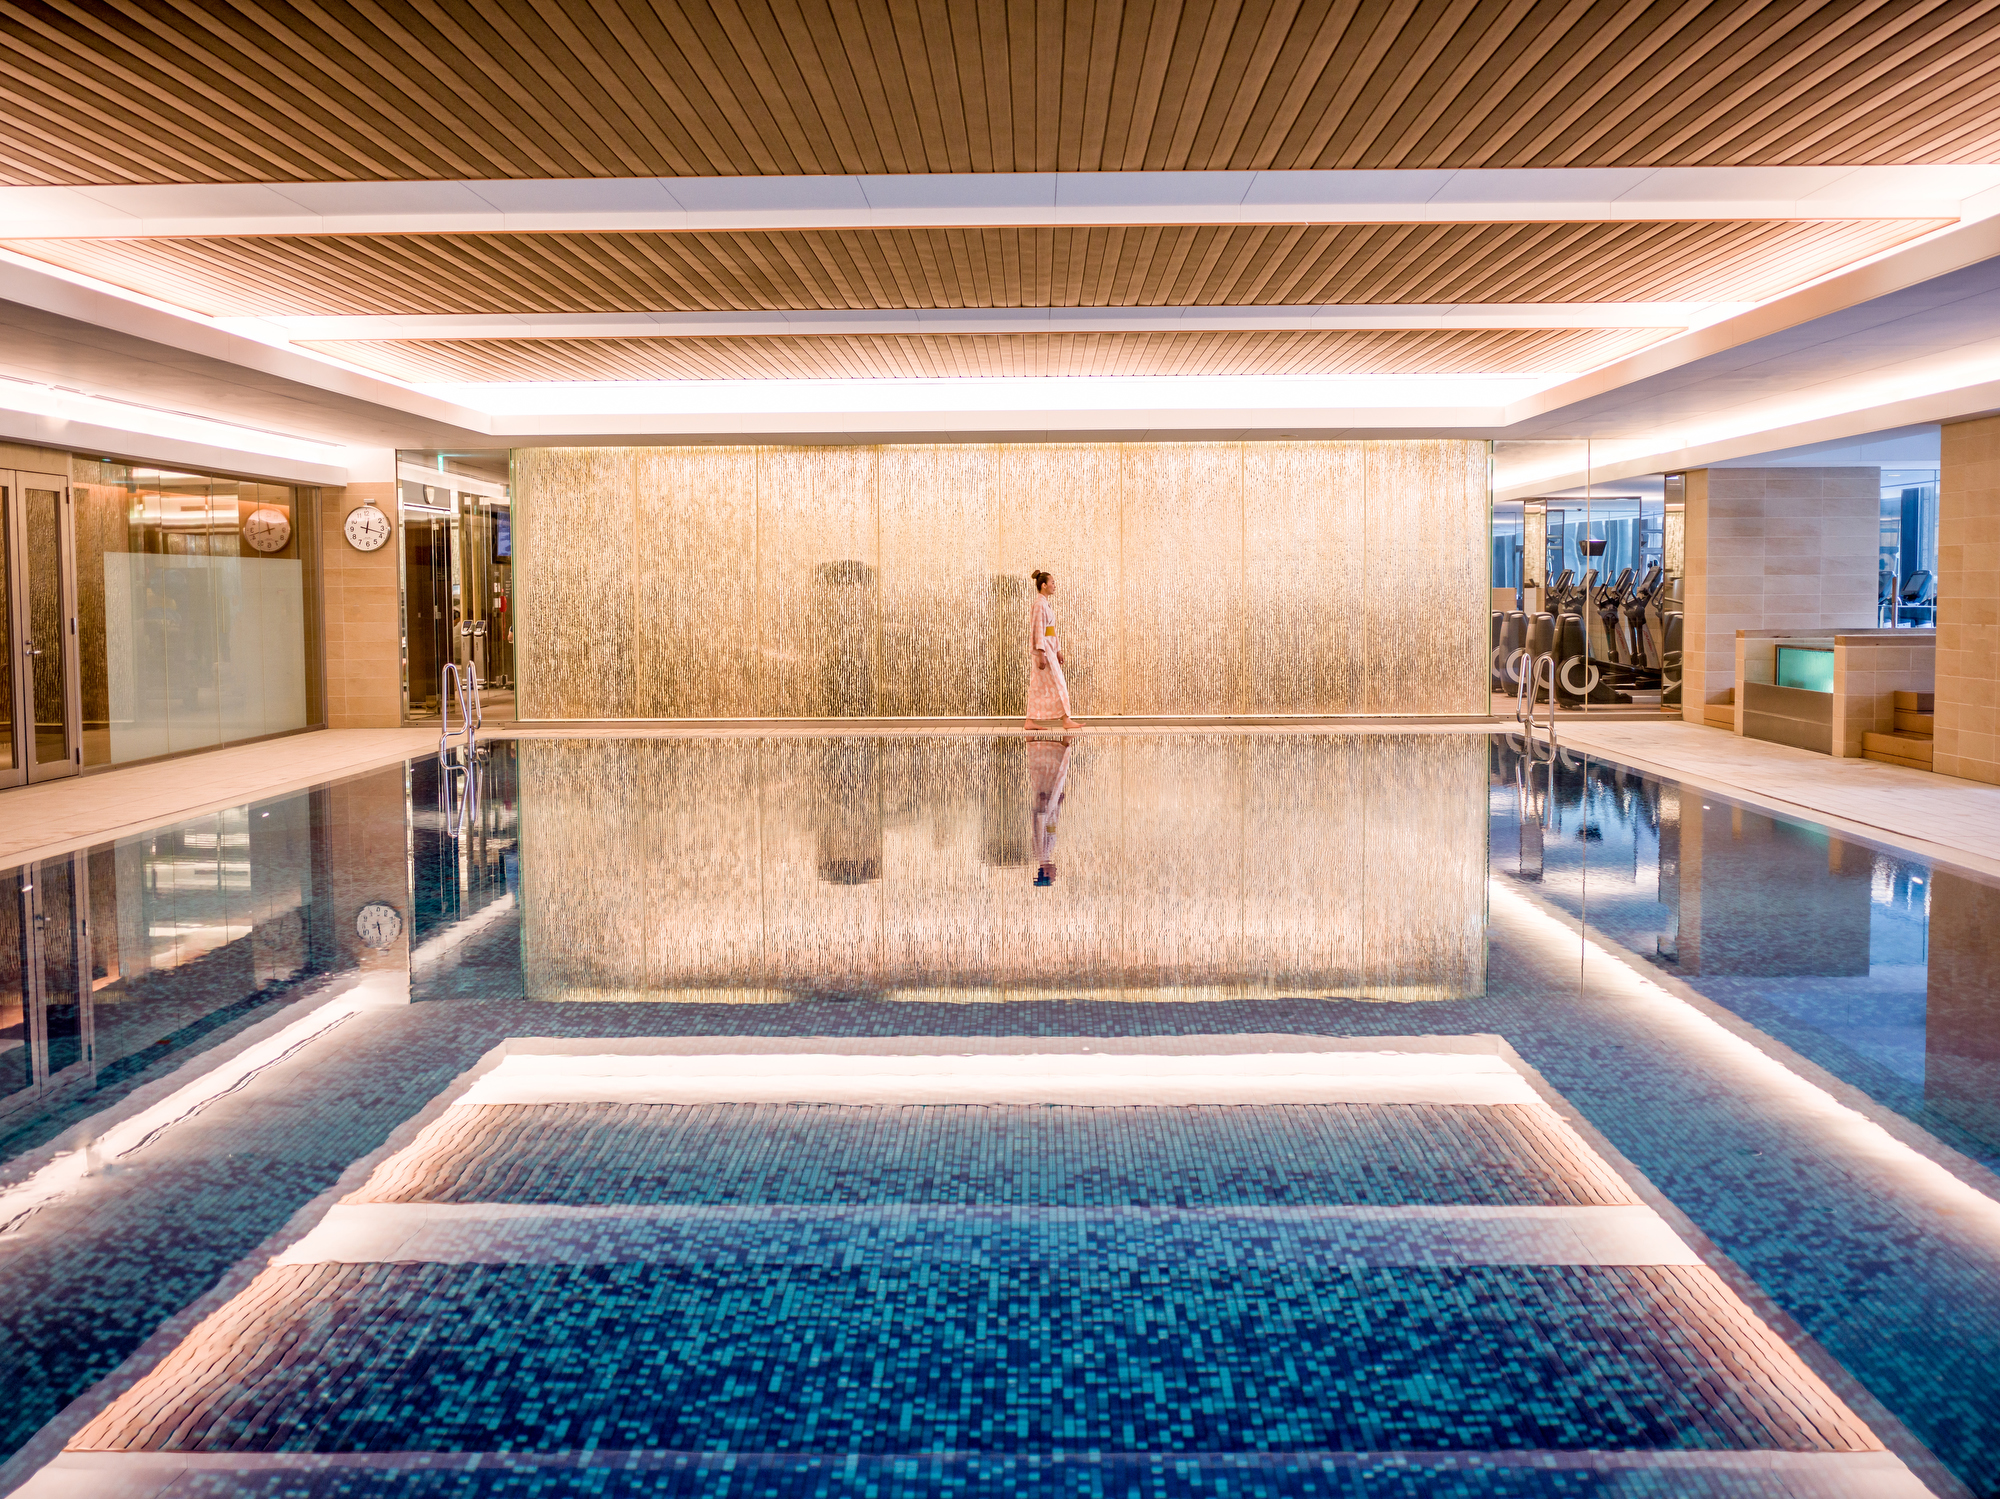 Hotels and Resorts photography and videography by Mott Visuals for InterContinental Osaka, Japan